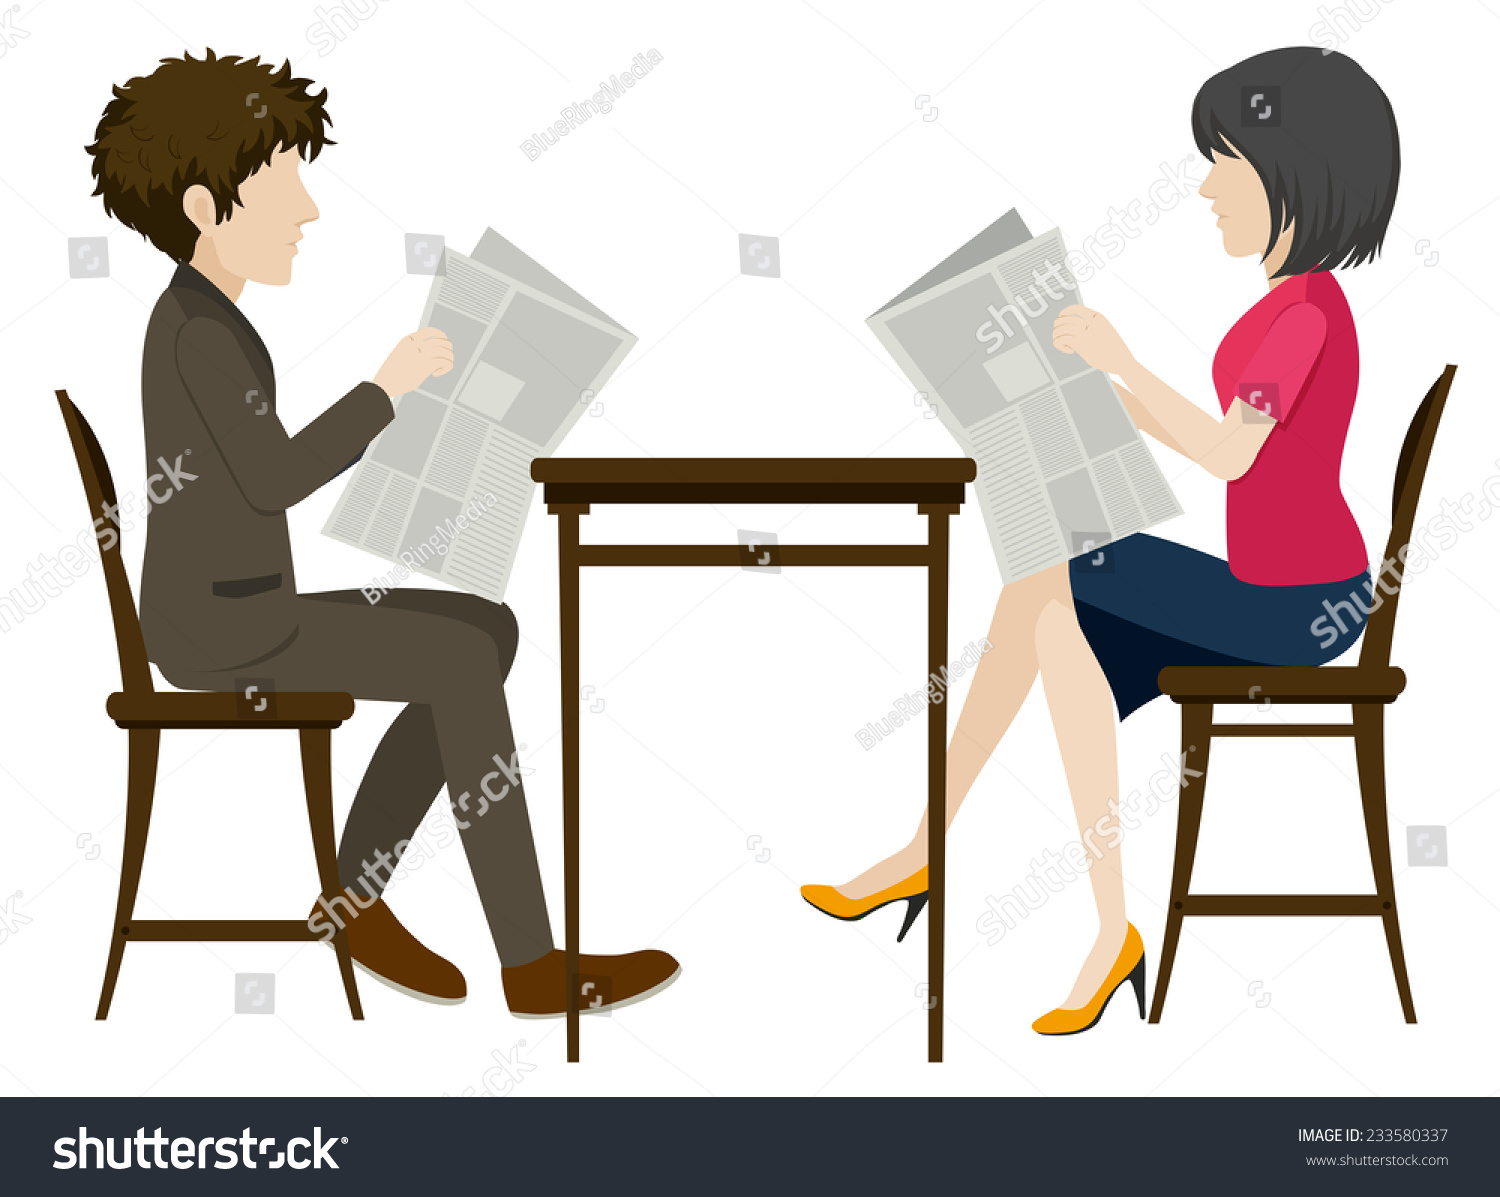 people sitting at table white background. faceless people with newspapers on a white background sitting at table w